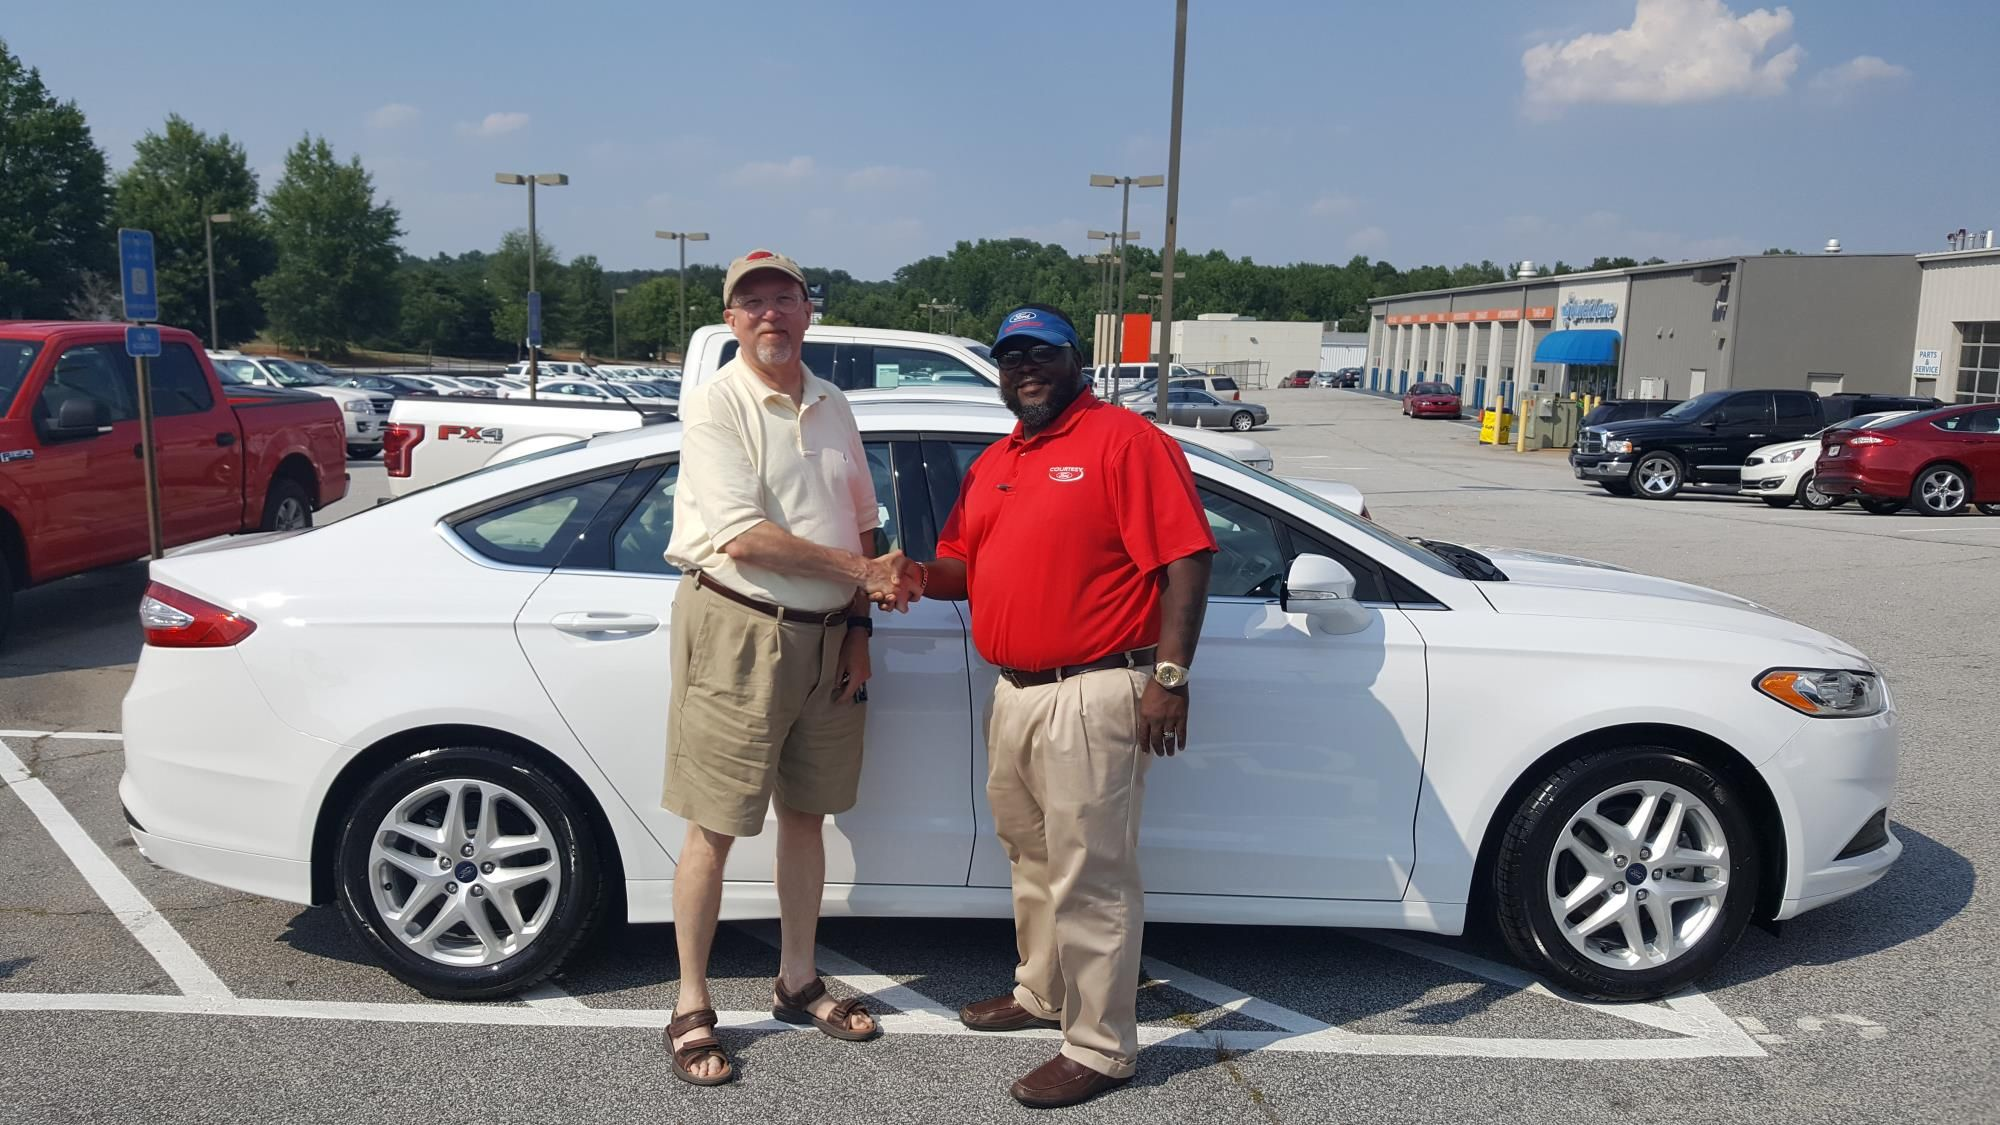 Jim Calhoun reviews the 2016 Ford Fusion he purchased from Courtesy